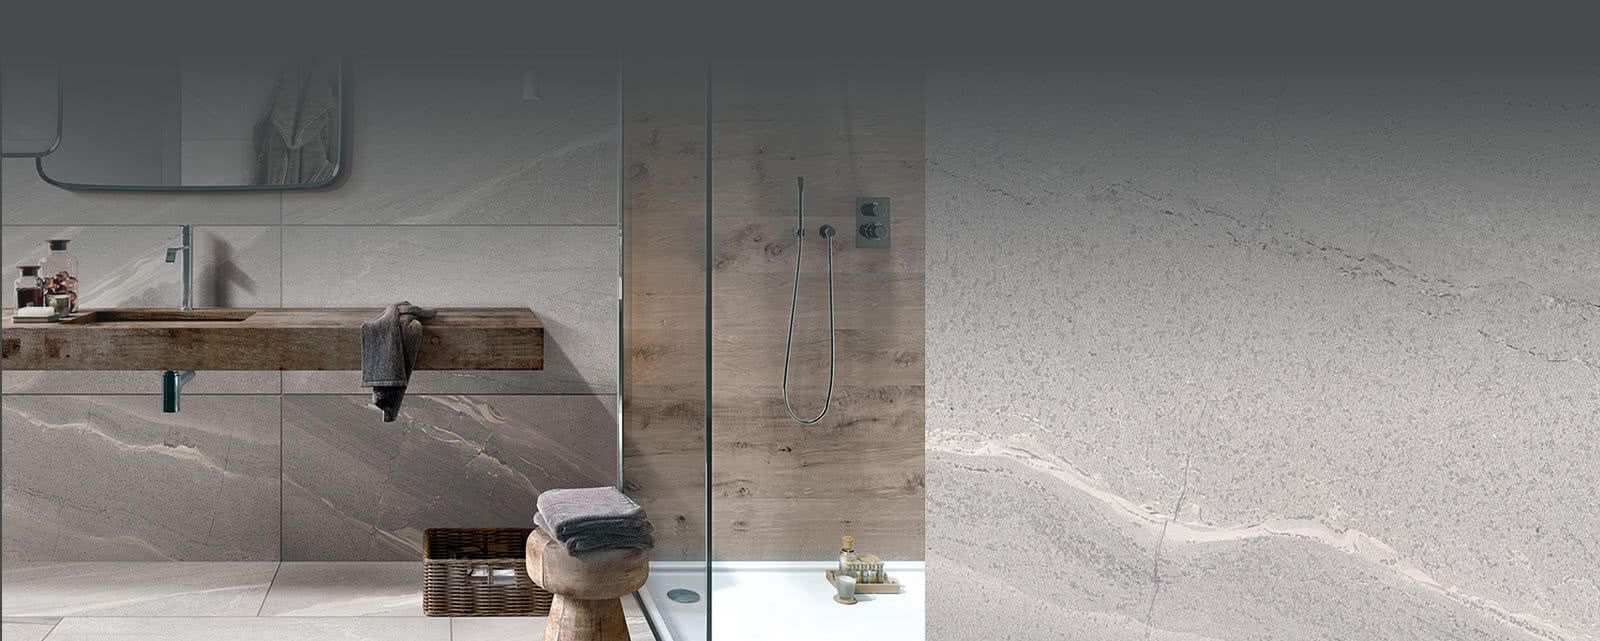 Buymytiles importer of high quality ceramic tiles in perth bathroom tiles perth inspirational tiles for bathrooms and showers wet ares tiles great selection of affordable designer tiles for your home dailygadgetfo Choice Image